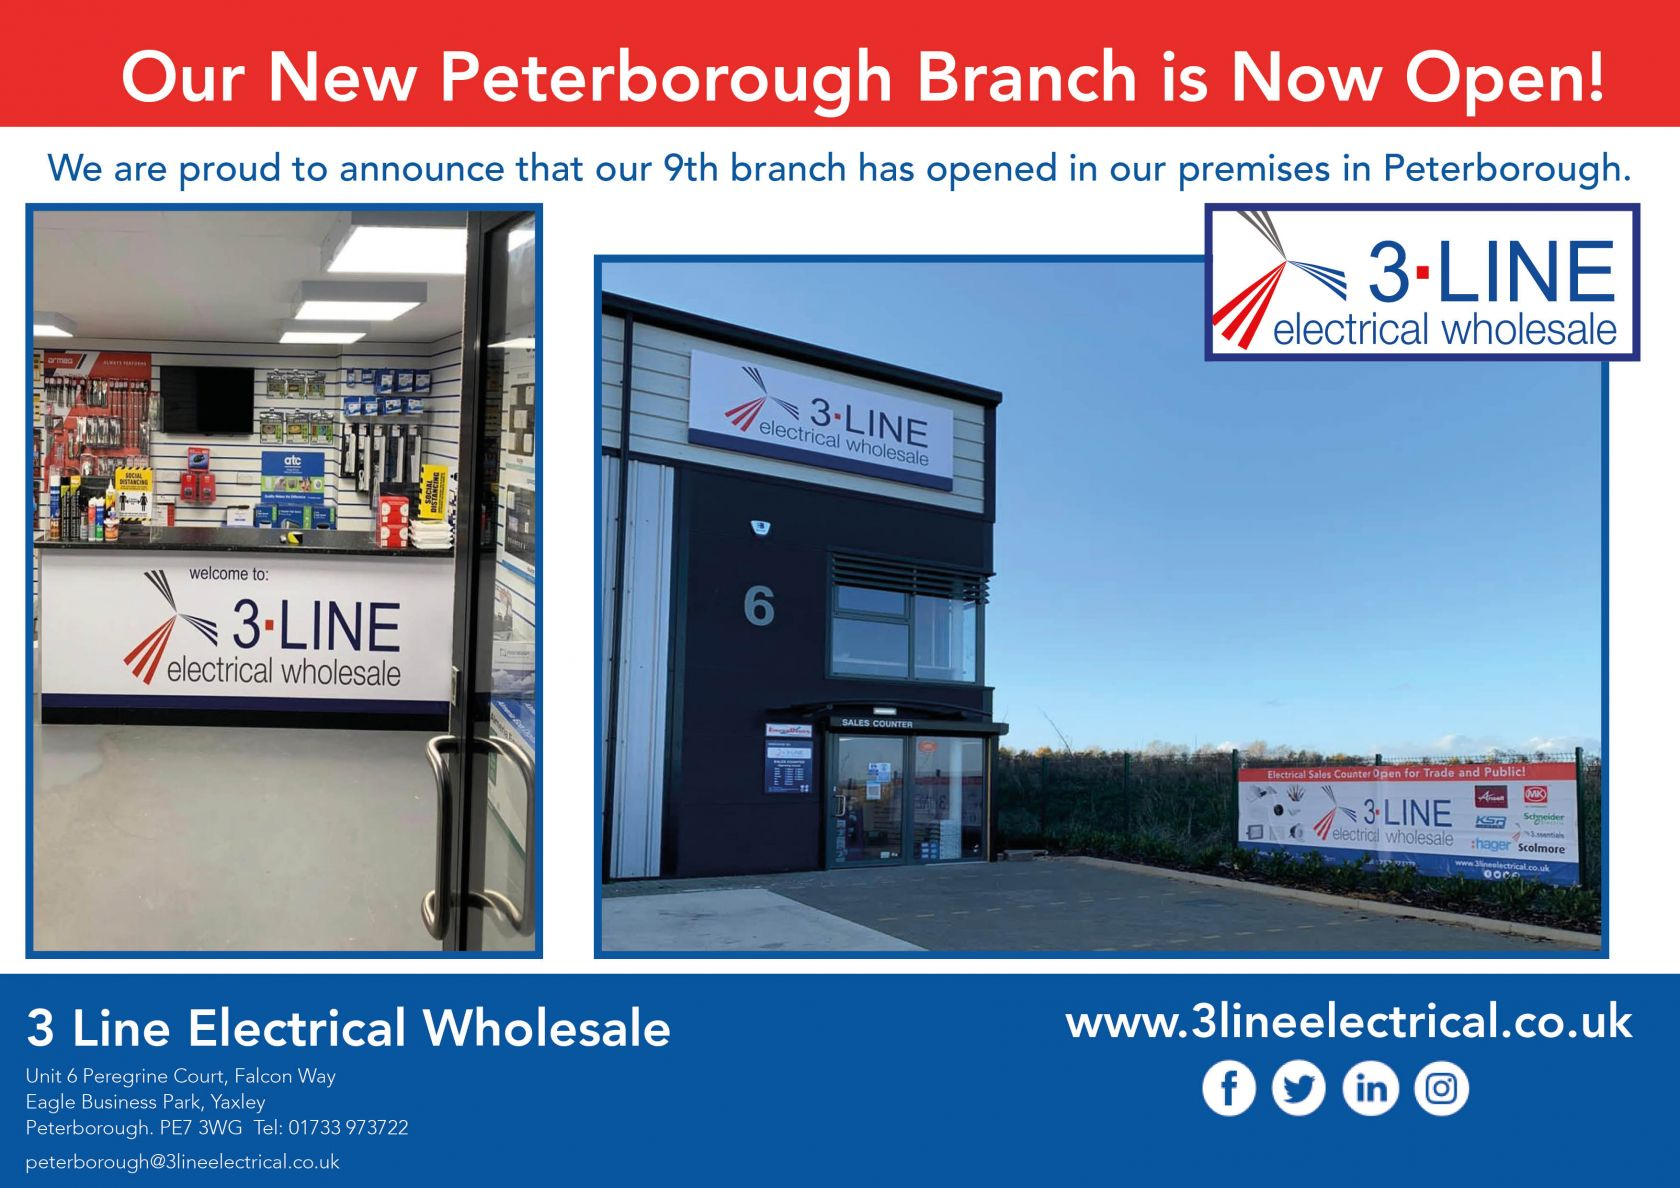 Peterborough Now Open News 1A